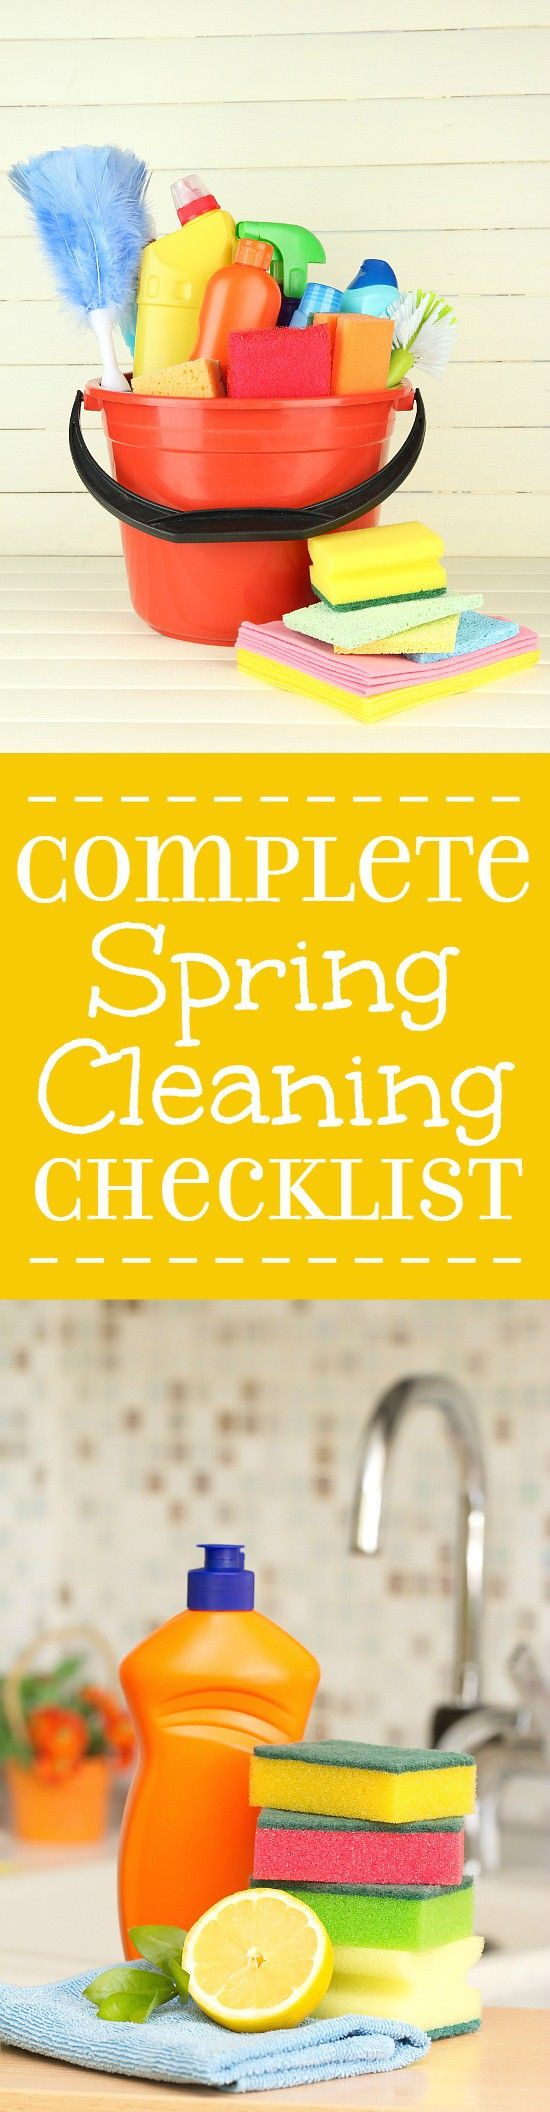 how to spring clean a house